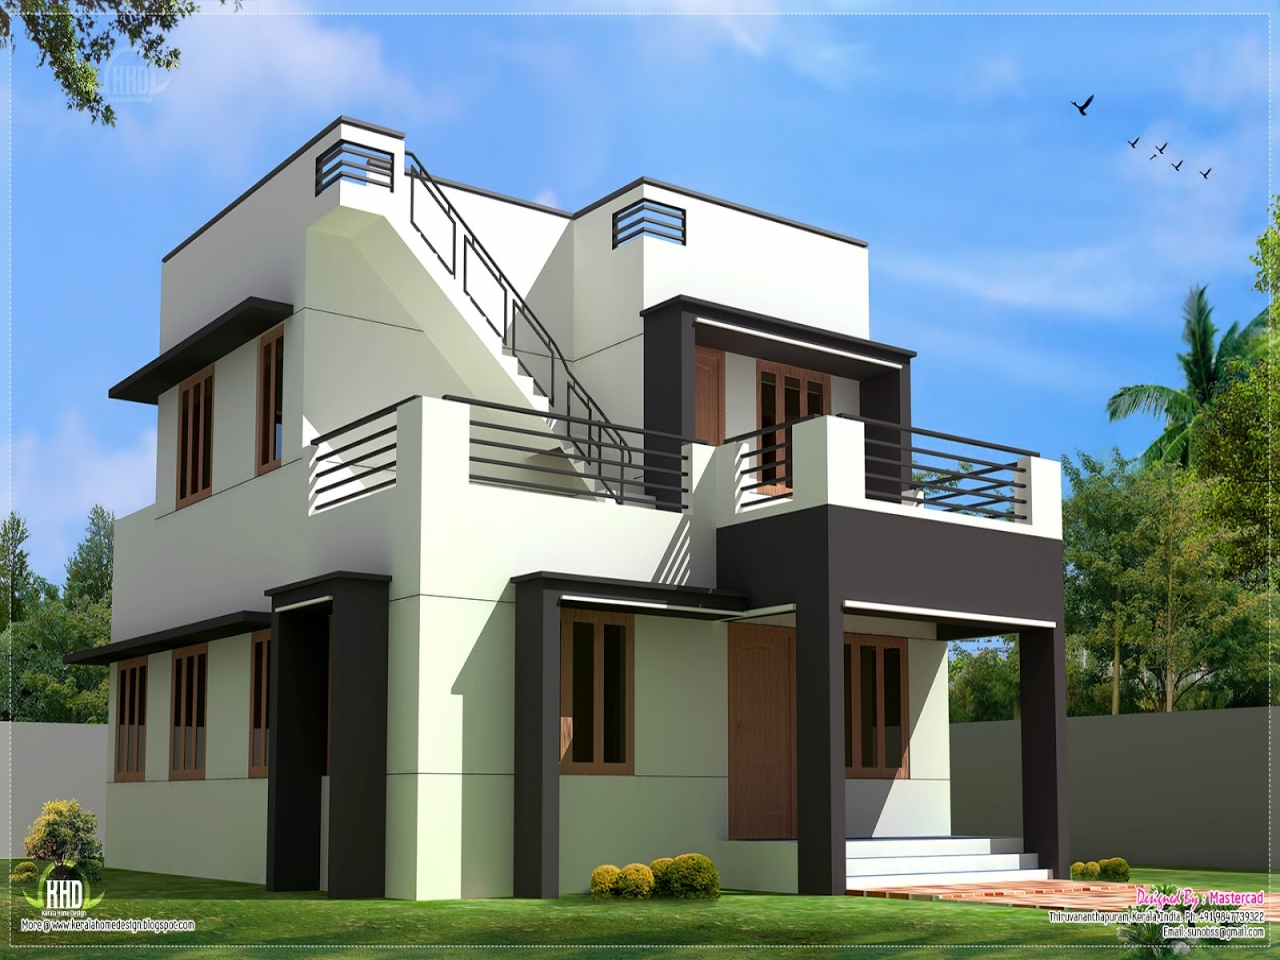 collection 50 beautiful narrow house design for a 2 story 2 floor collection 50 beautiful narrow house design for a 2 story 2 floor home with small lot